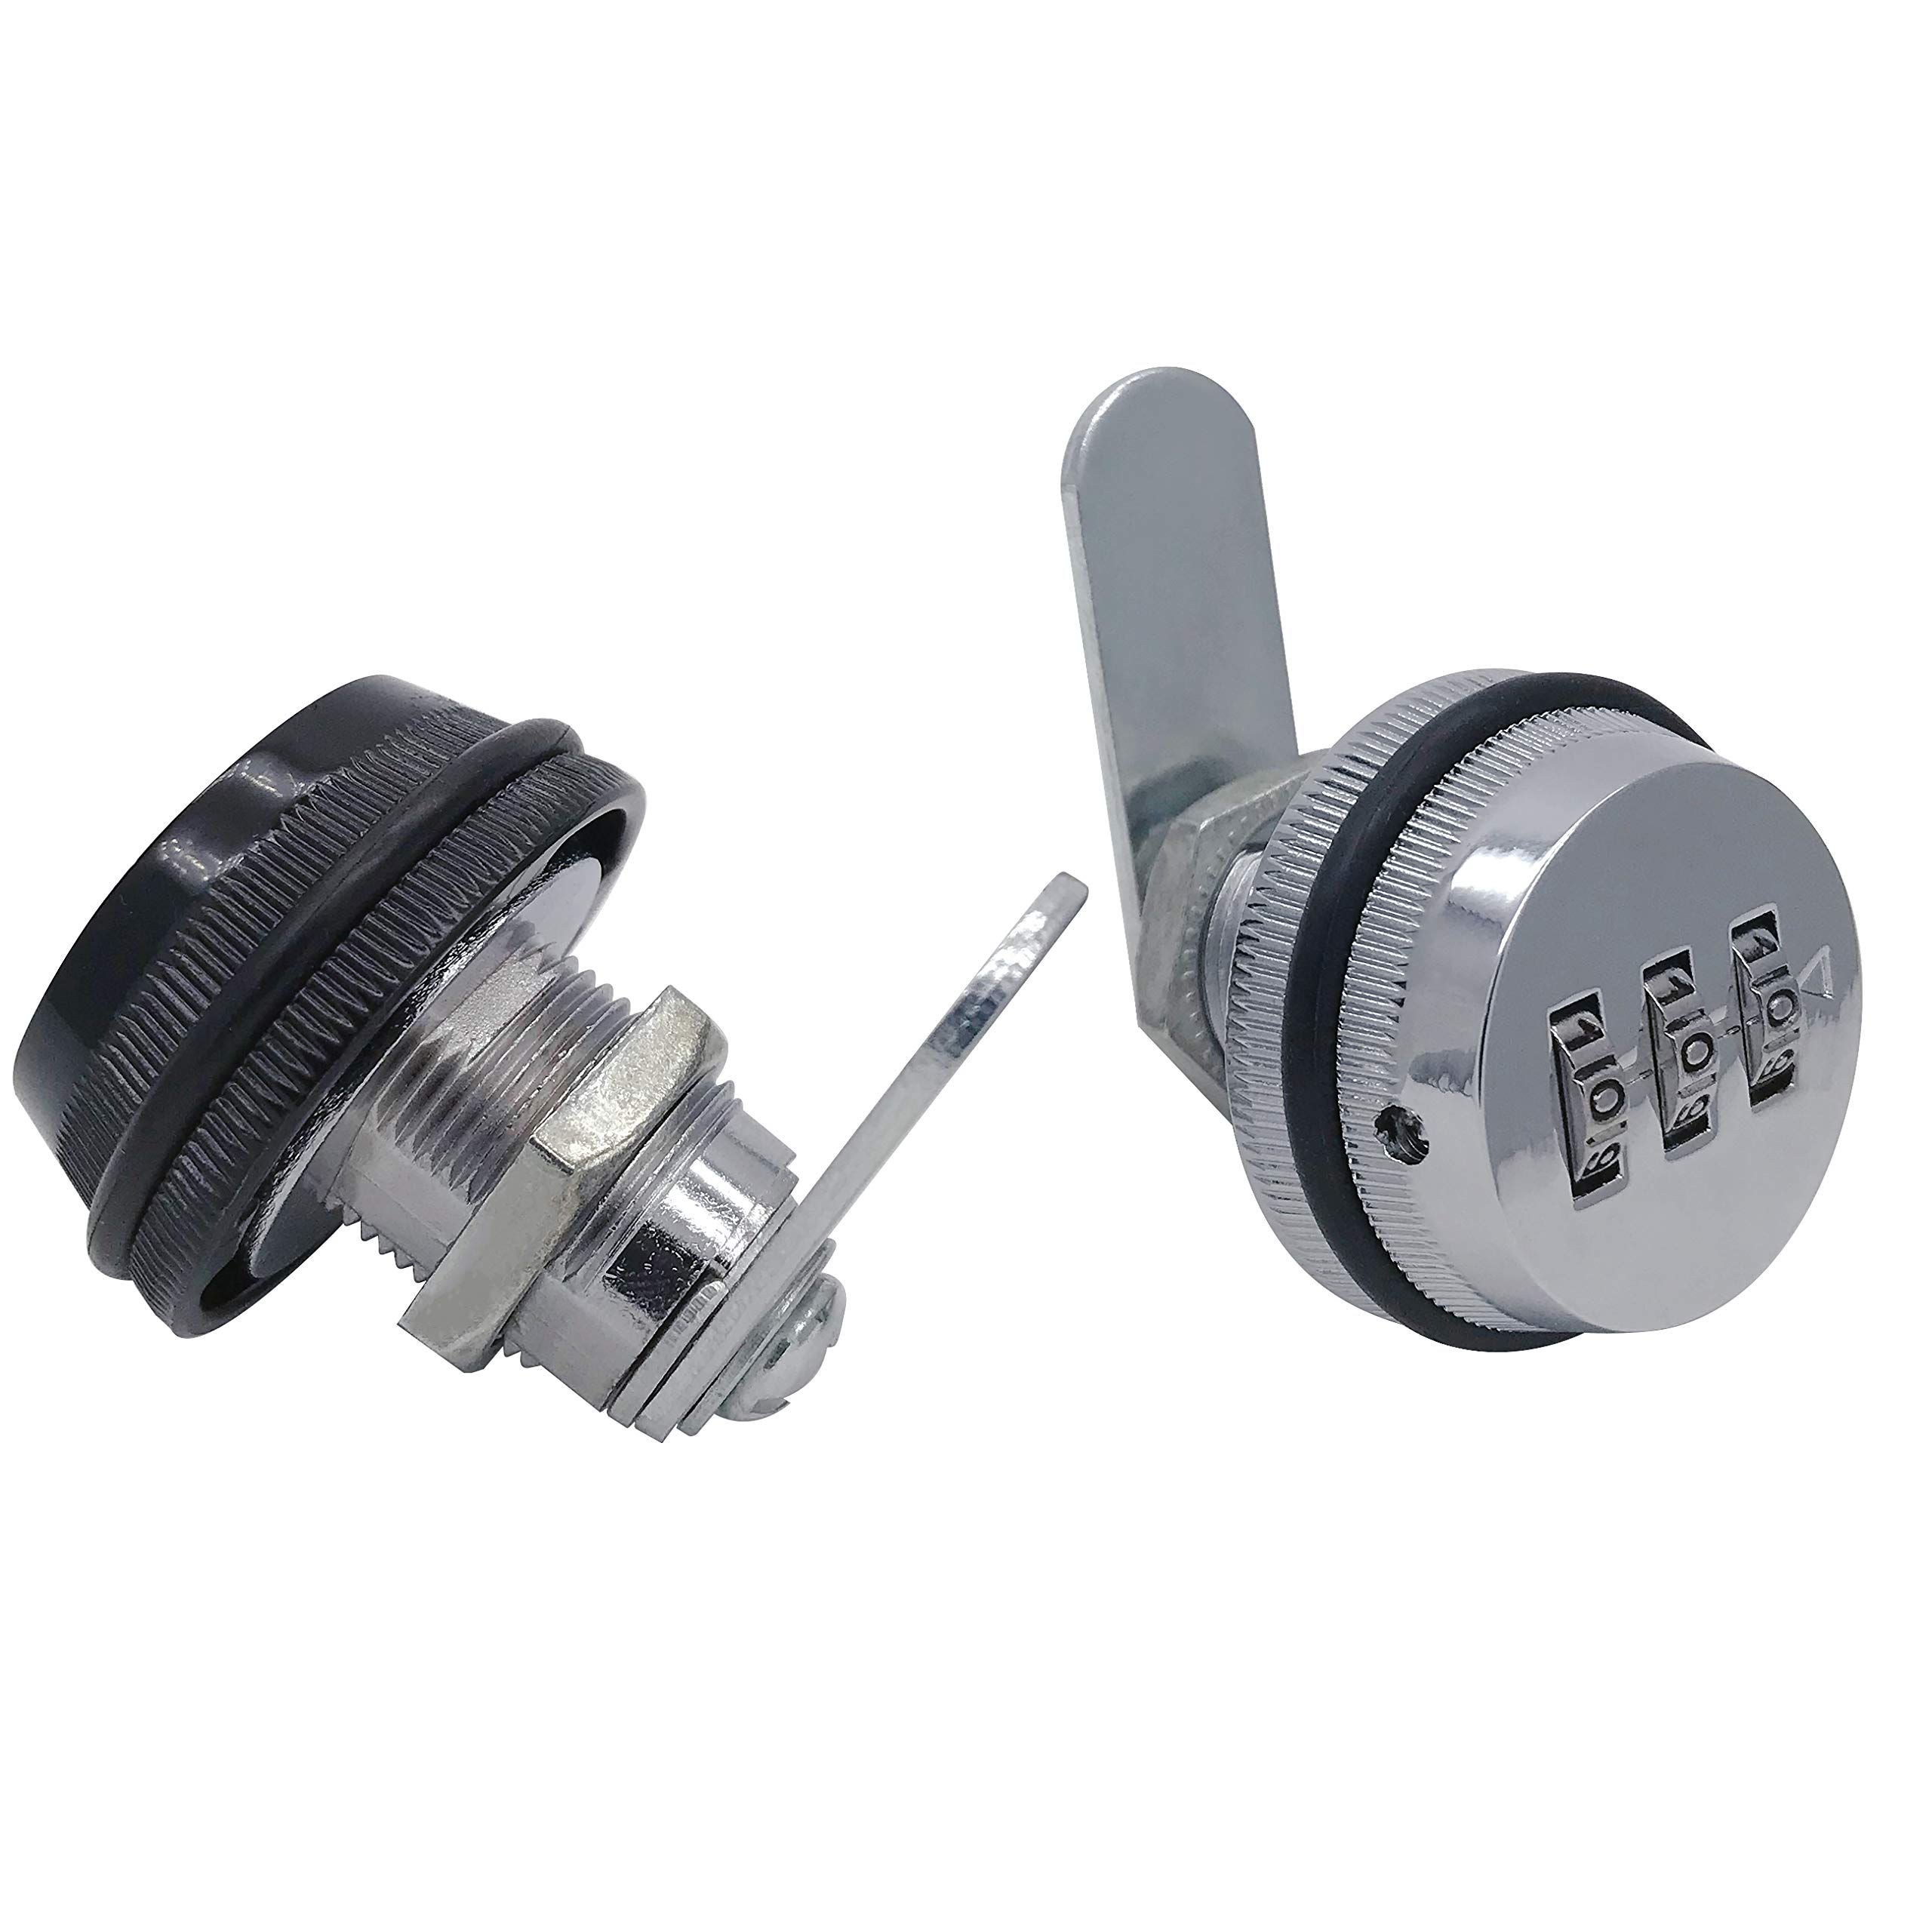 Combination Cam Lock, 20mm Cylinder Length, 3 Digit Code Security Locks for Arcade Cupboard Drawer Mailbox, Silver and Black, 2Pcs